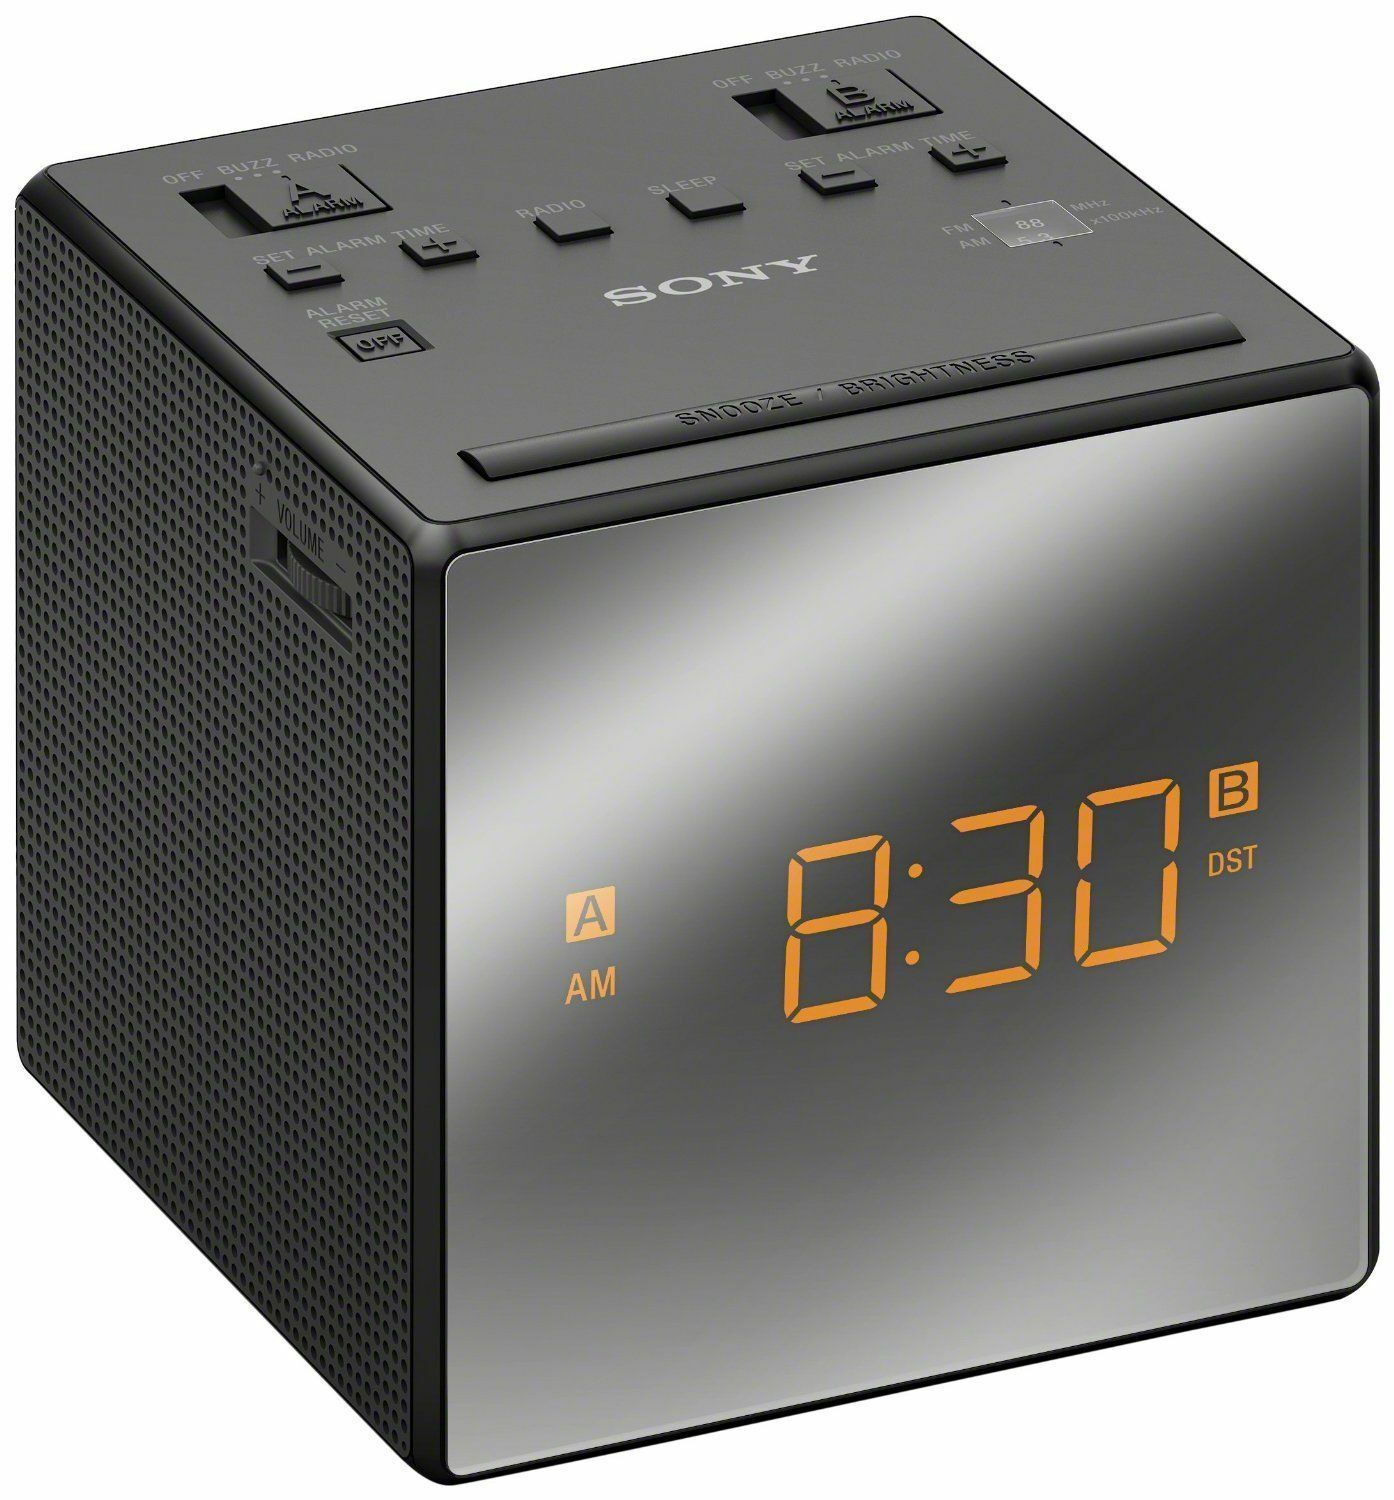 LOT OF 9 Sony ICF-C1T Alarm Clock Radio Dual Alarm/Black,